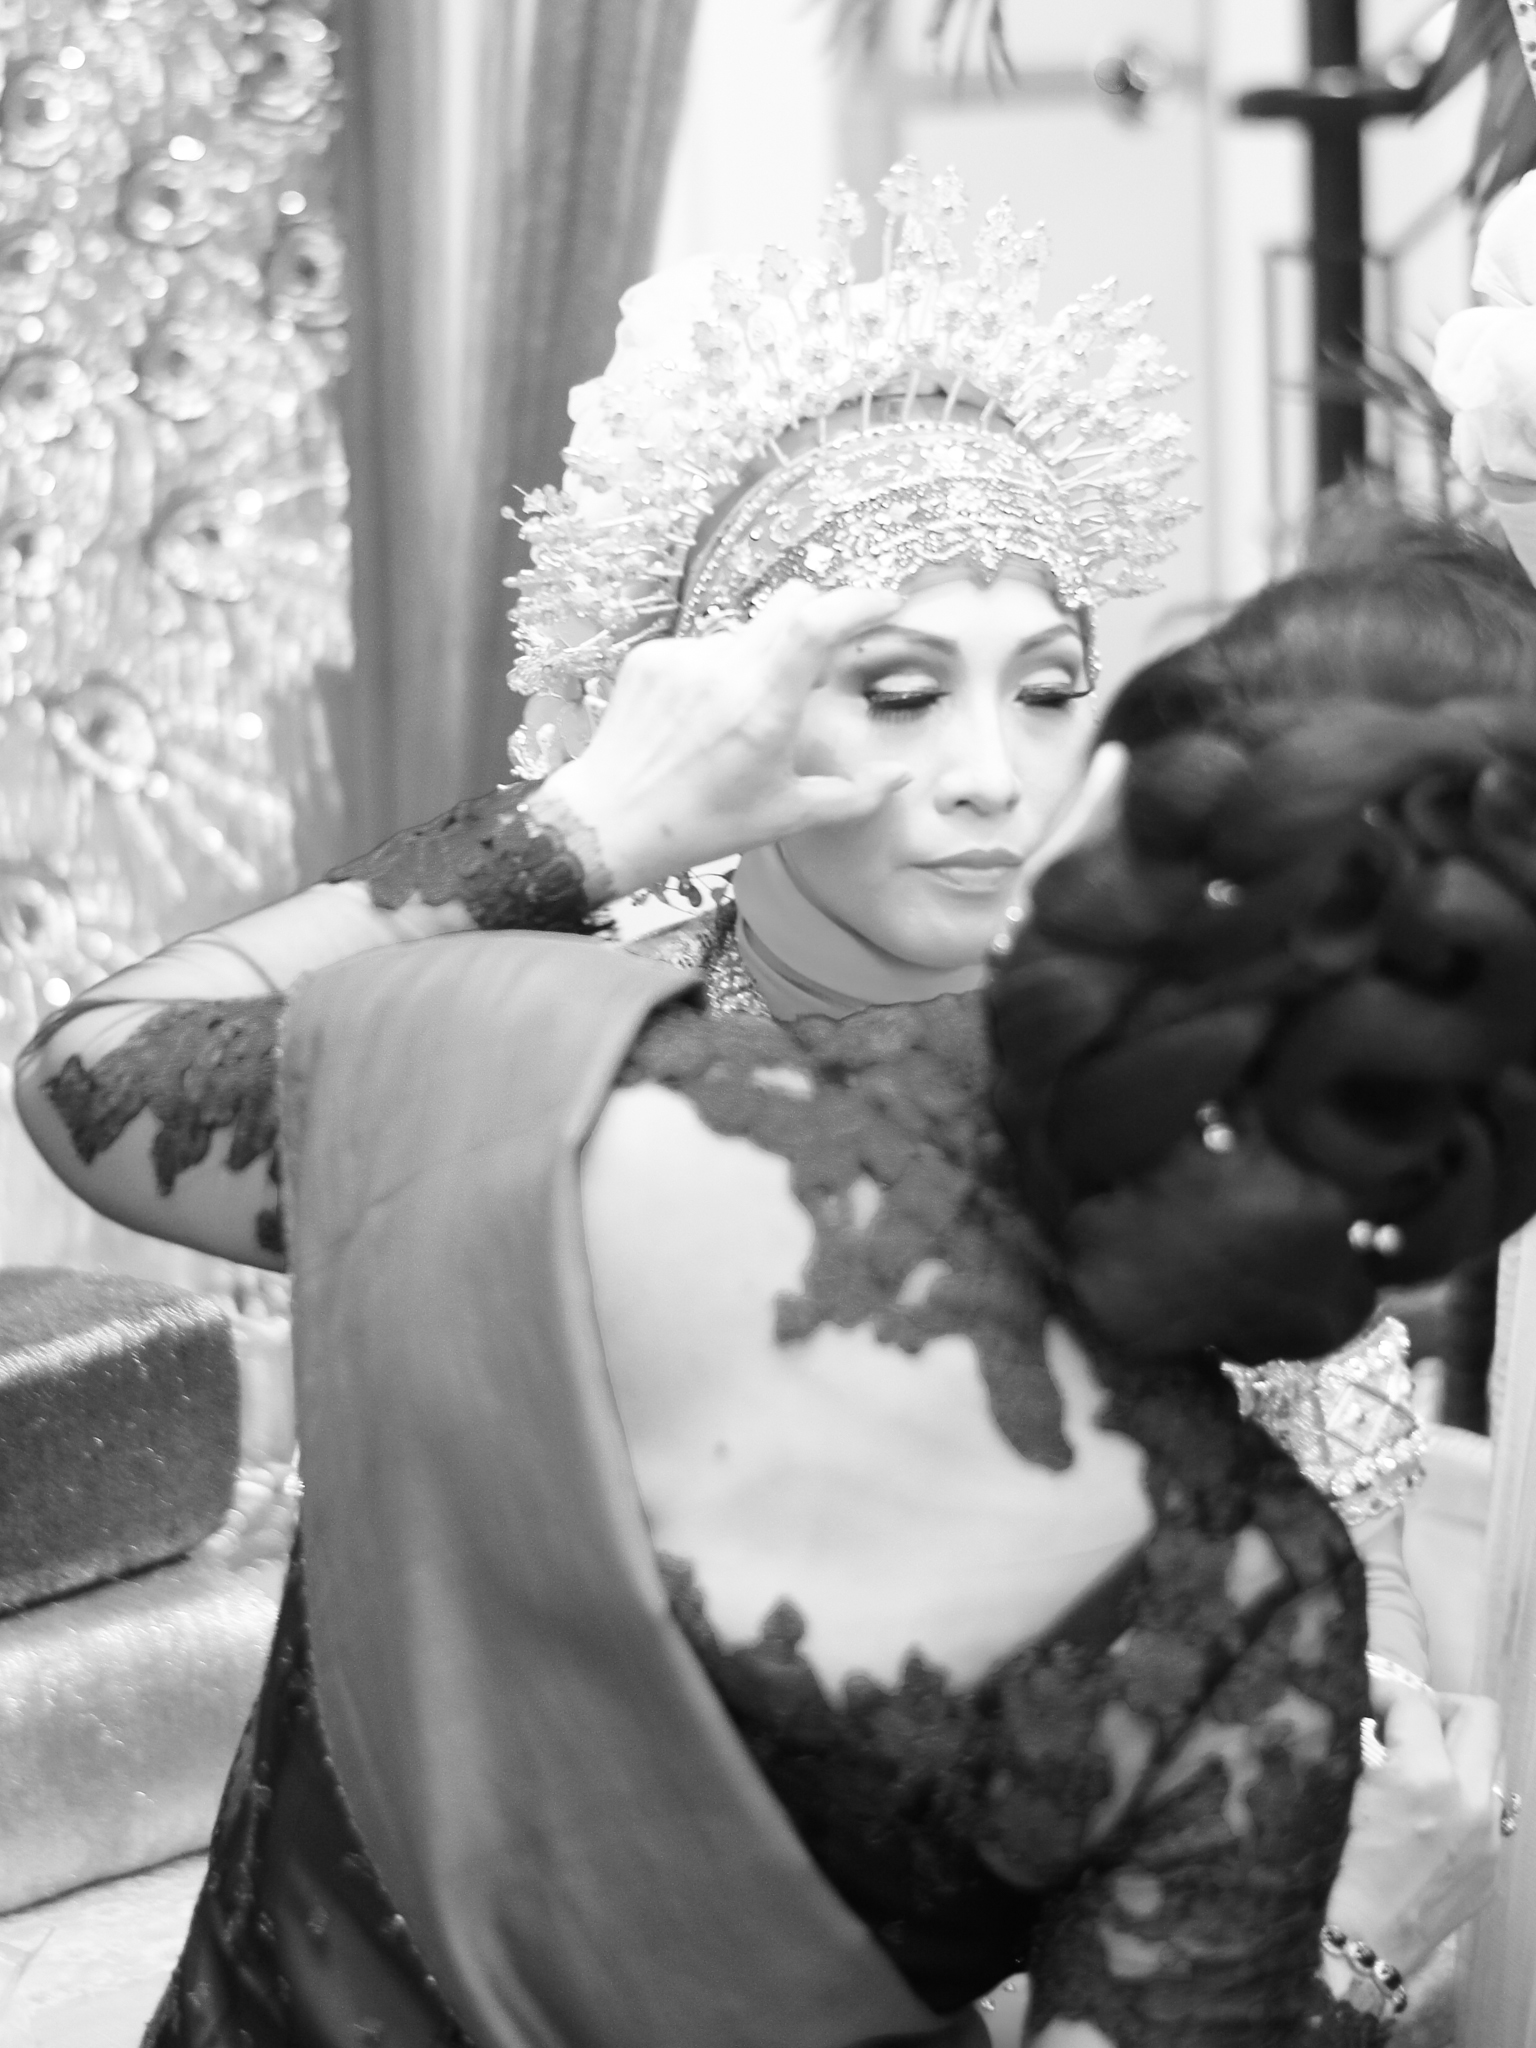 During the Mappacci, very close family members and special guests are invited to give blessings to the bride and place henna on her hands.